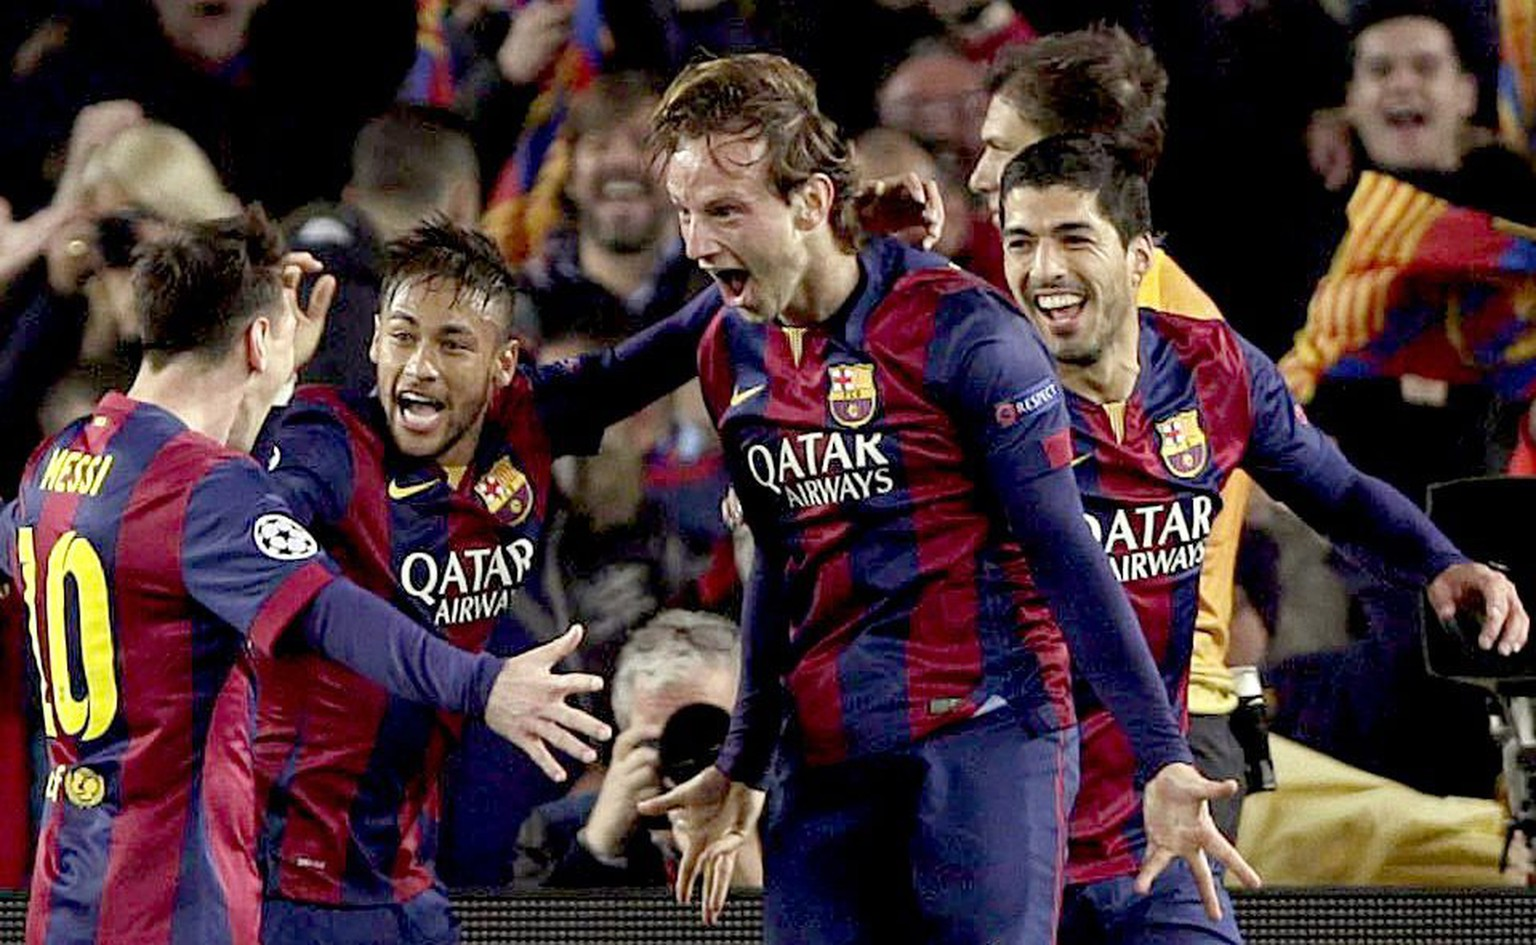 epa04668477 FC Barcelona's Croatian midfielder Ivan Rakitic (2-R) celebrates with Argentinian striker Lionel Messi (L), Brazilian Neymar Jr. (2-L) and Uruguayan Luis Suarez (R) after scoring the opening goal against Manchester City during the UEFA Champions League round of 16 seocnd leg match played at Camp Nou stadium, in Barcelona, Spain, 18 March 2015.  EPA/Alberto Estevez